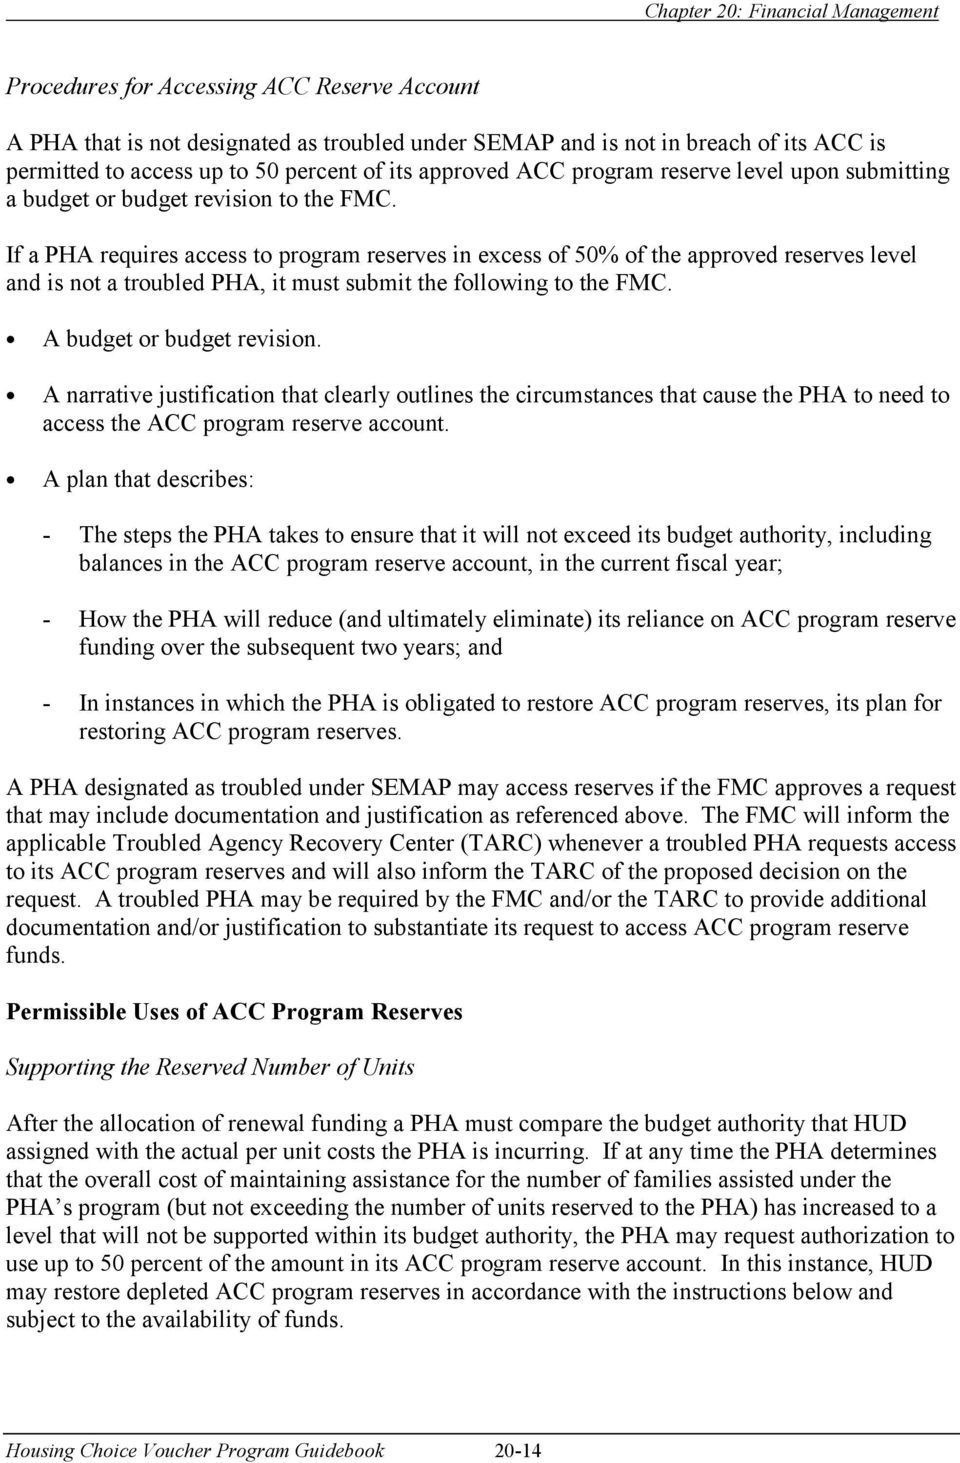 If a PHA requires access to program reserves in excess of 50% of the approved reserves level and is not a troubled PHA, it must submit the following to the FMC. A budget or budget revision.